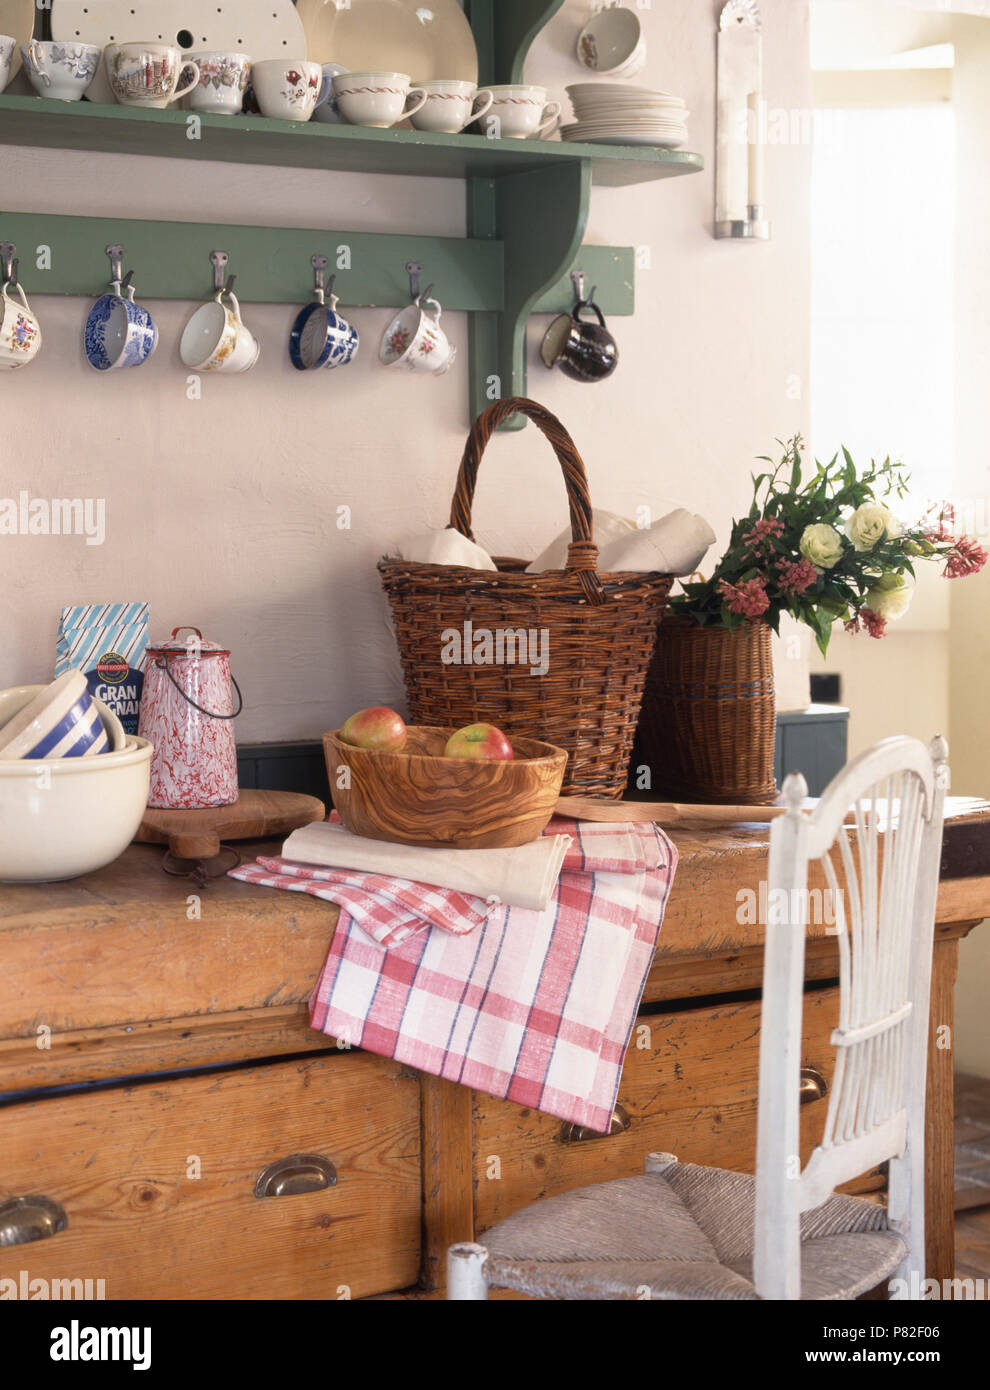 Wicker Basket On An Old Pine Dresser Below Green Painted Wall Shelves With Vintage China Cups Stock Photo Alamy